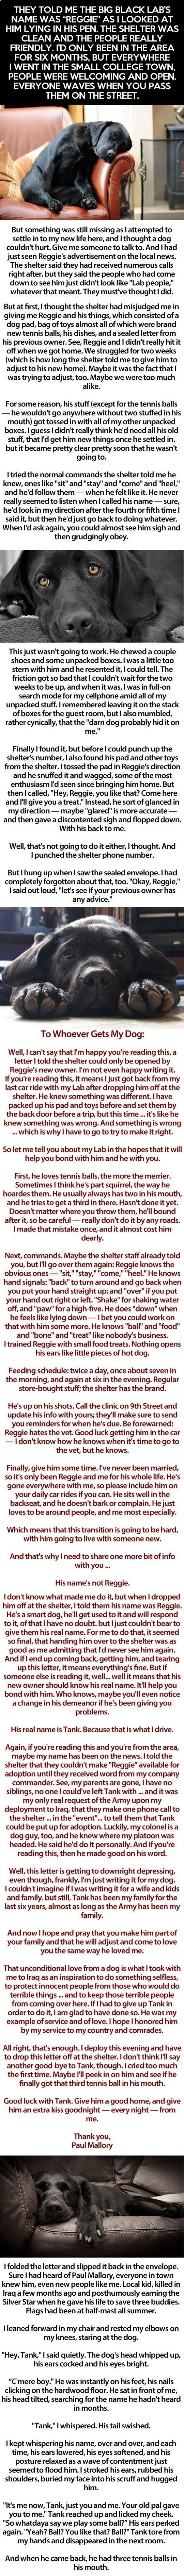 Not Any Rescue Dog Story. It Blew Me Away